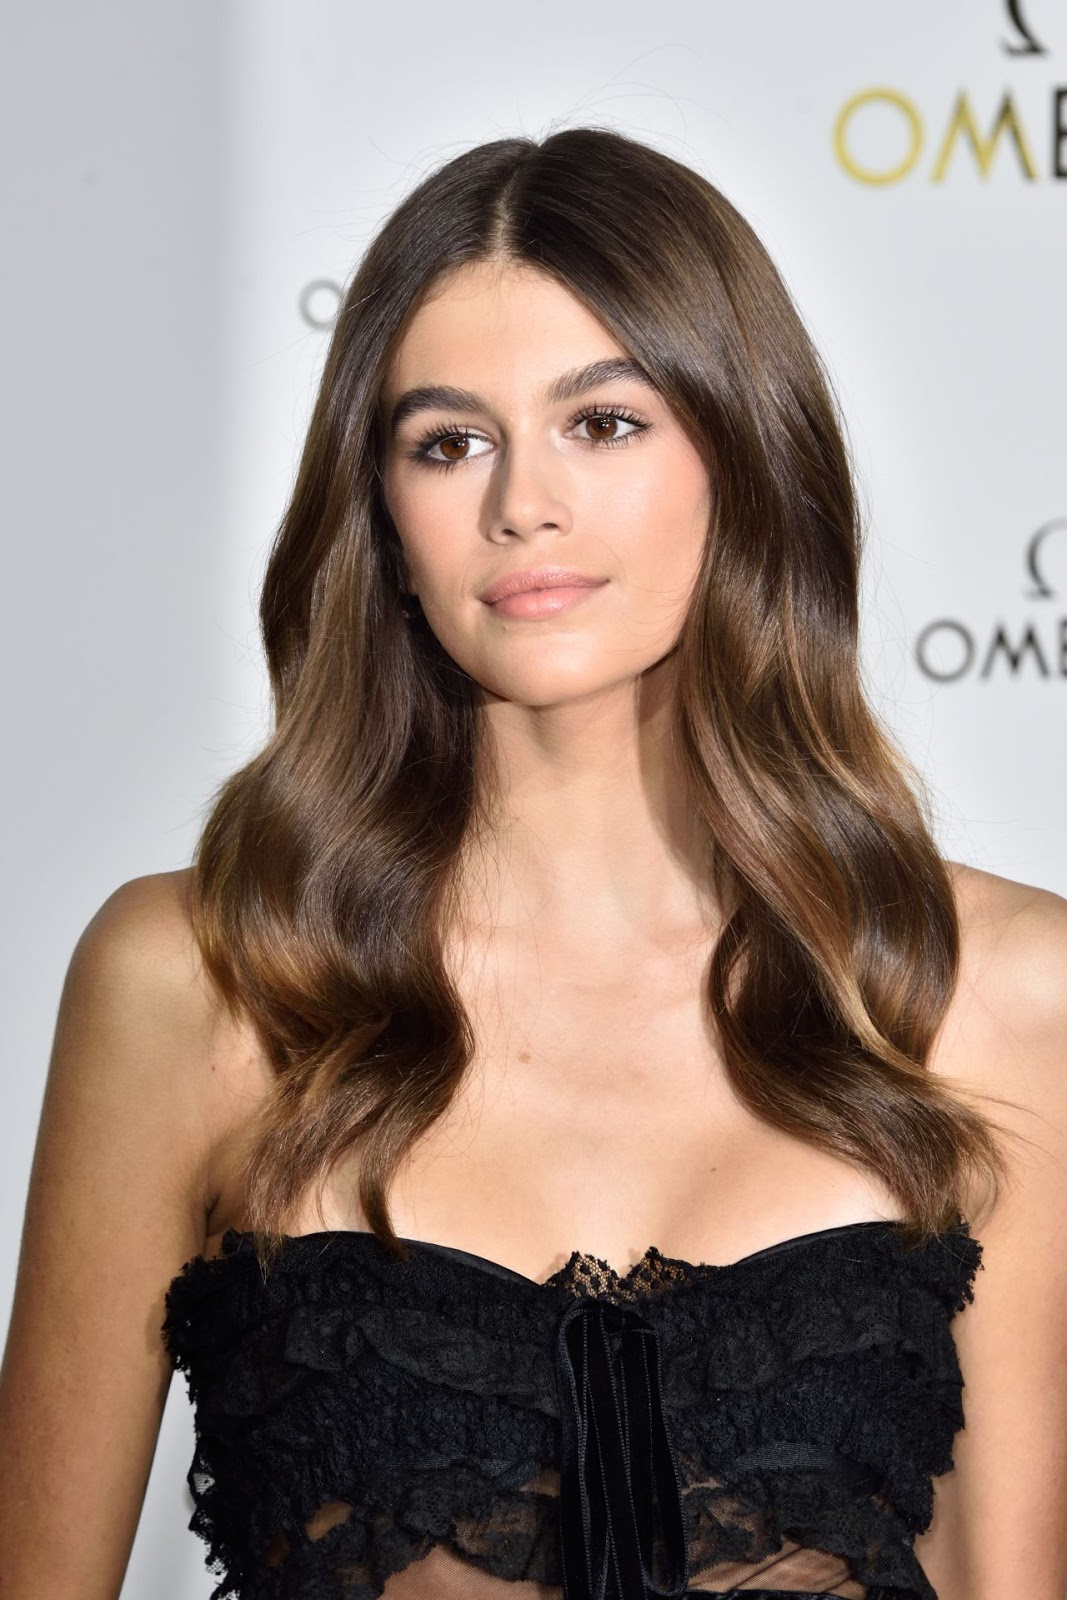 Cindy Crawford Daughter Kaia Gerber